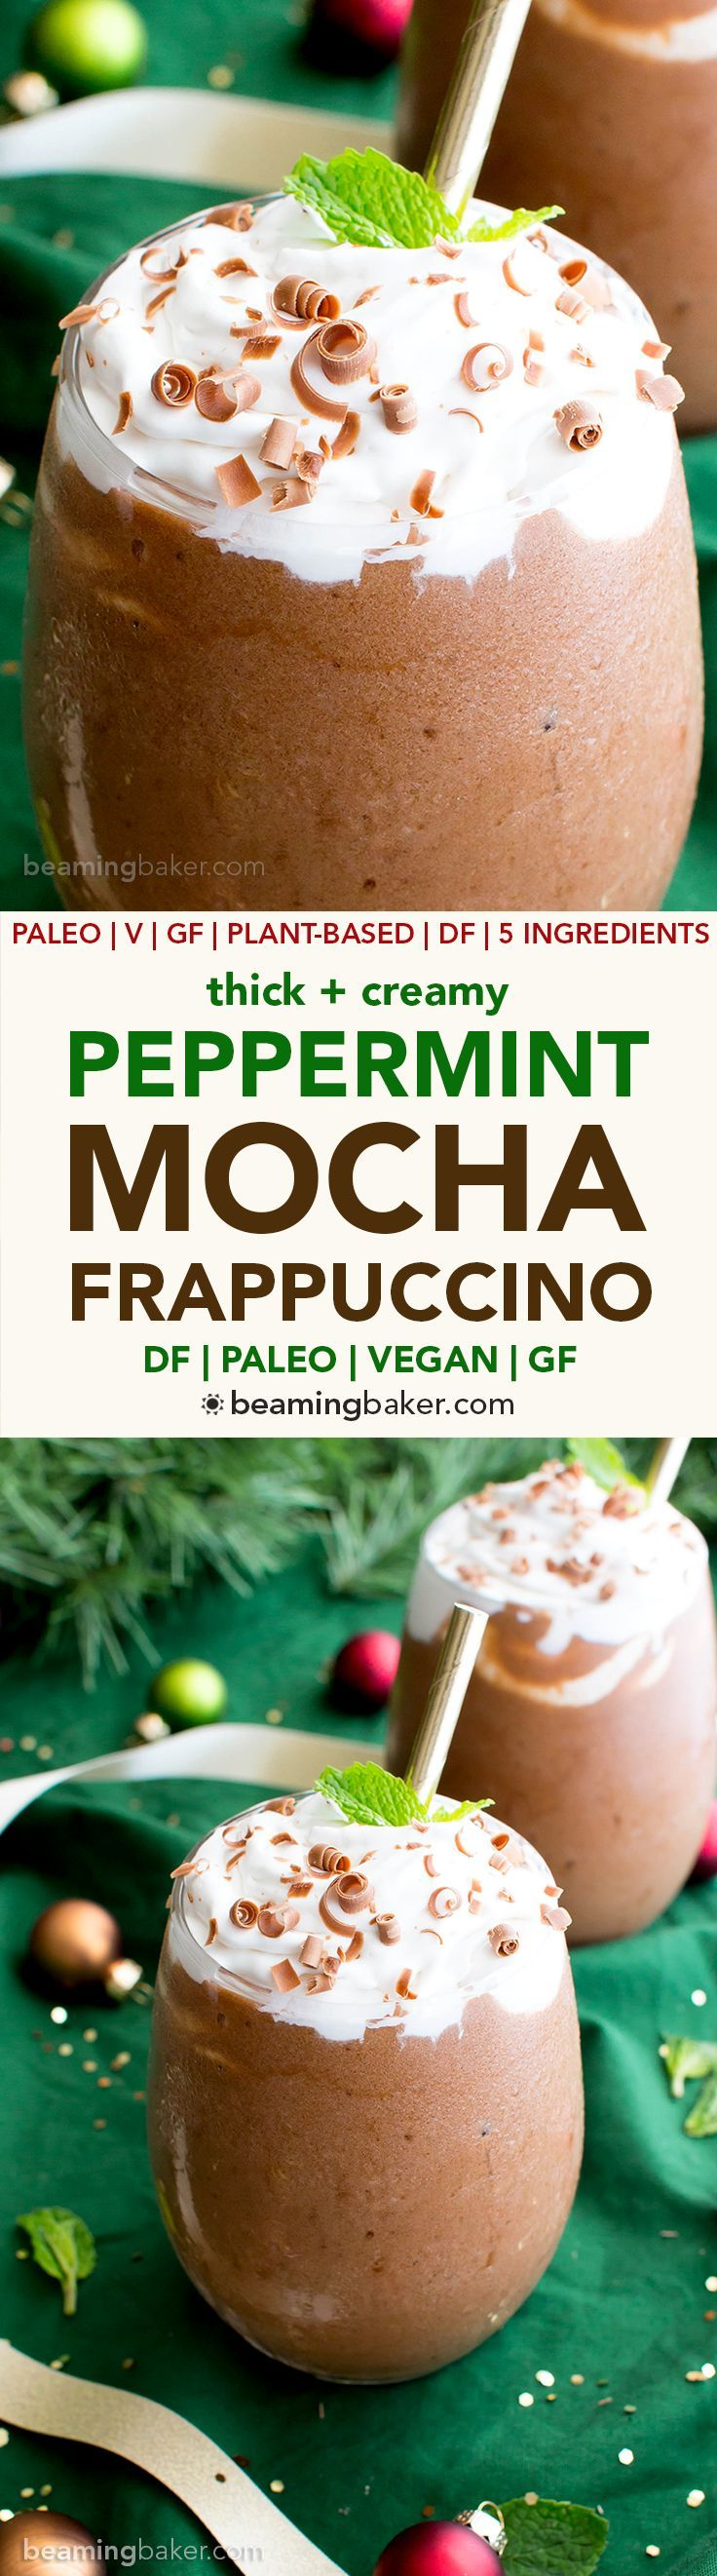 Vegan Peppermint Mocha Frappuccino: an easy, whole ingredient recipe for minty, thick and chocolatey peppermint mocha frappes!